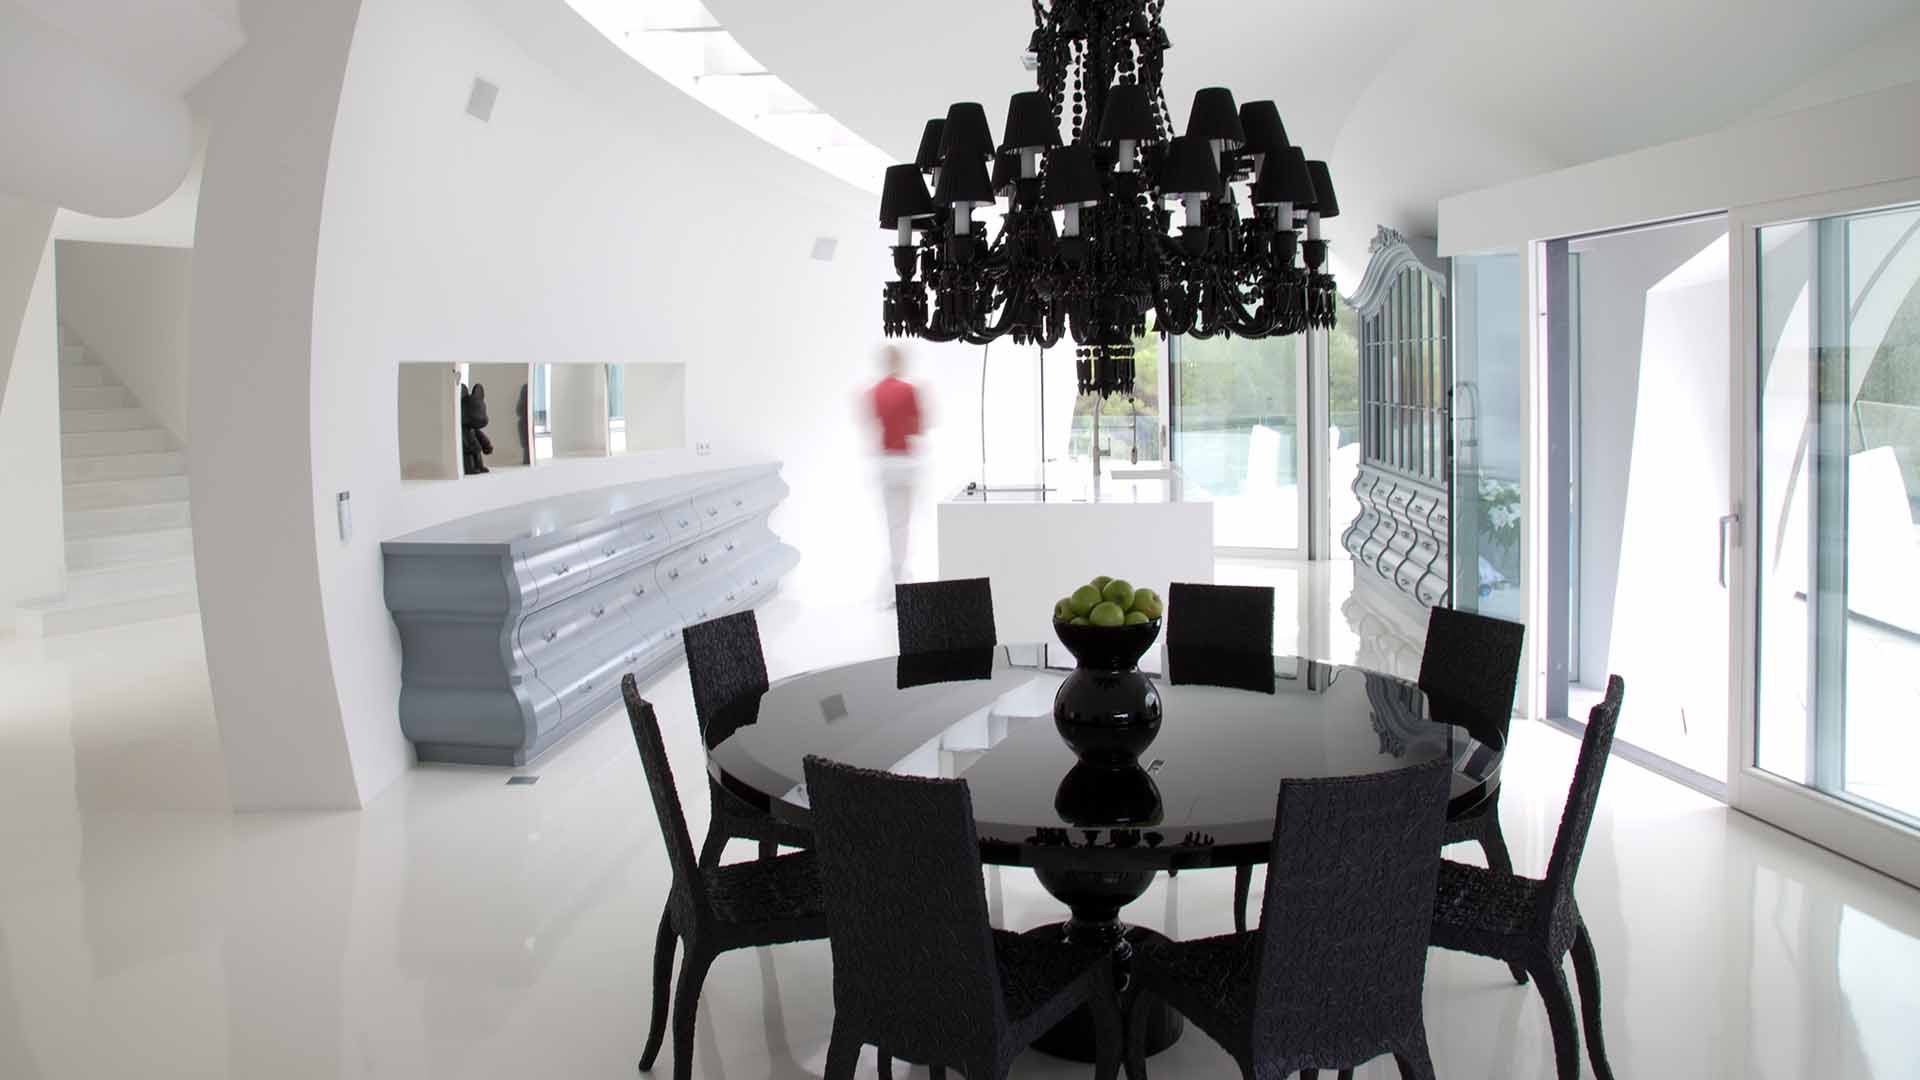 Black dining room chandeliers - Beauty Black Chandelier And Black Dining Room Chairs And Table Furniture In Modern Design Image